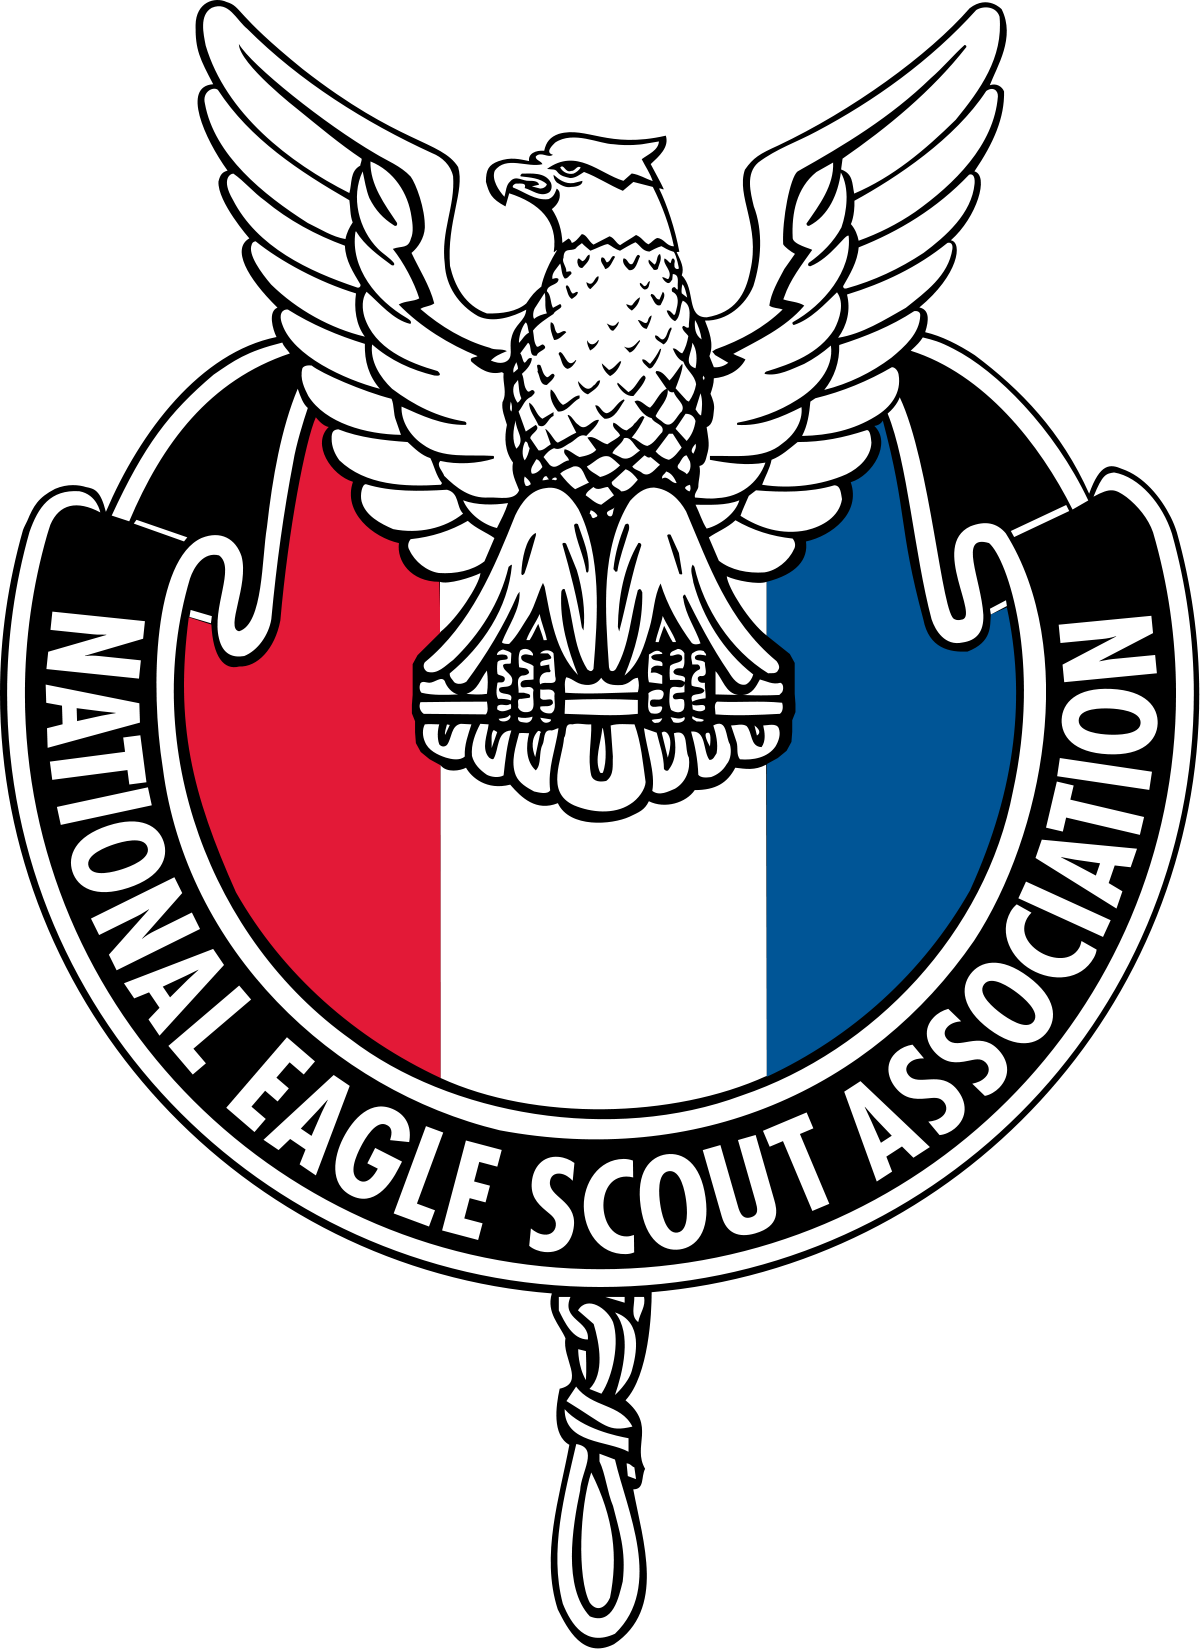 Eagle Scout Logo Vector At Getdrawingscom Free For Personal Use